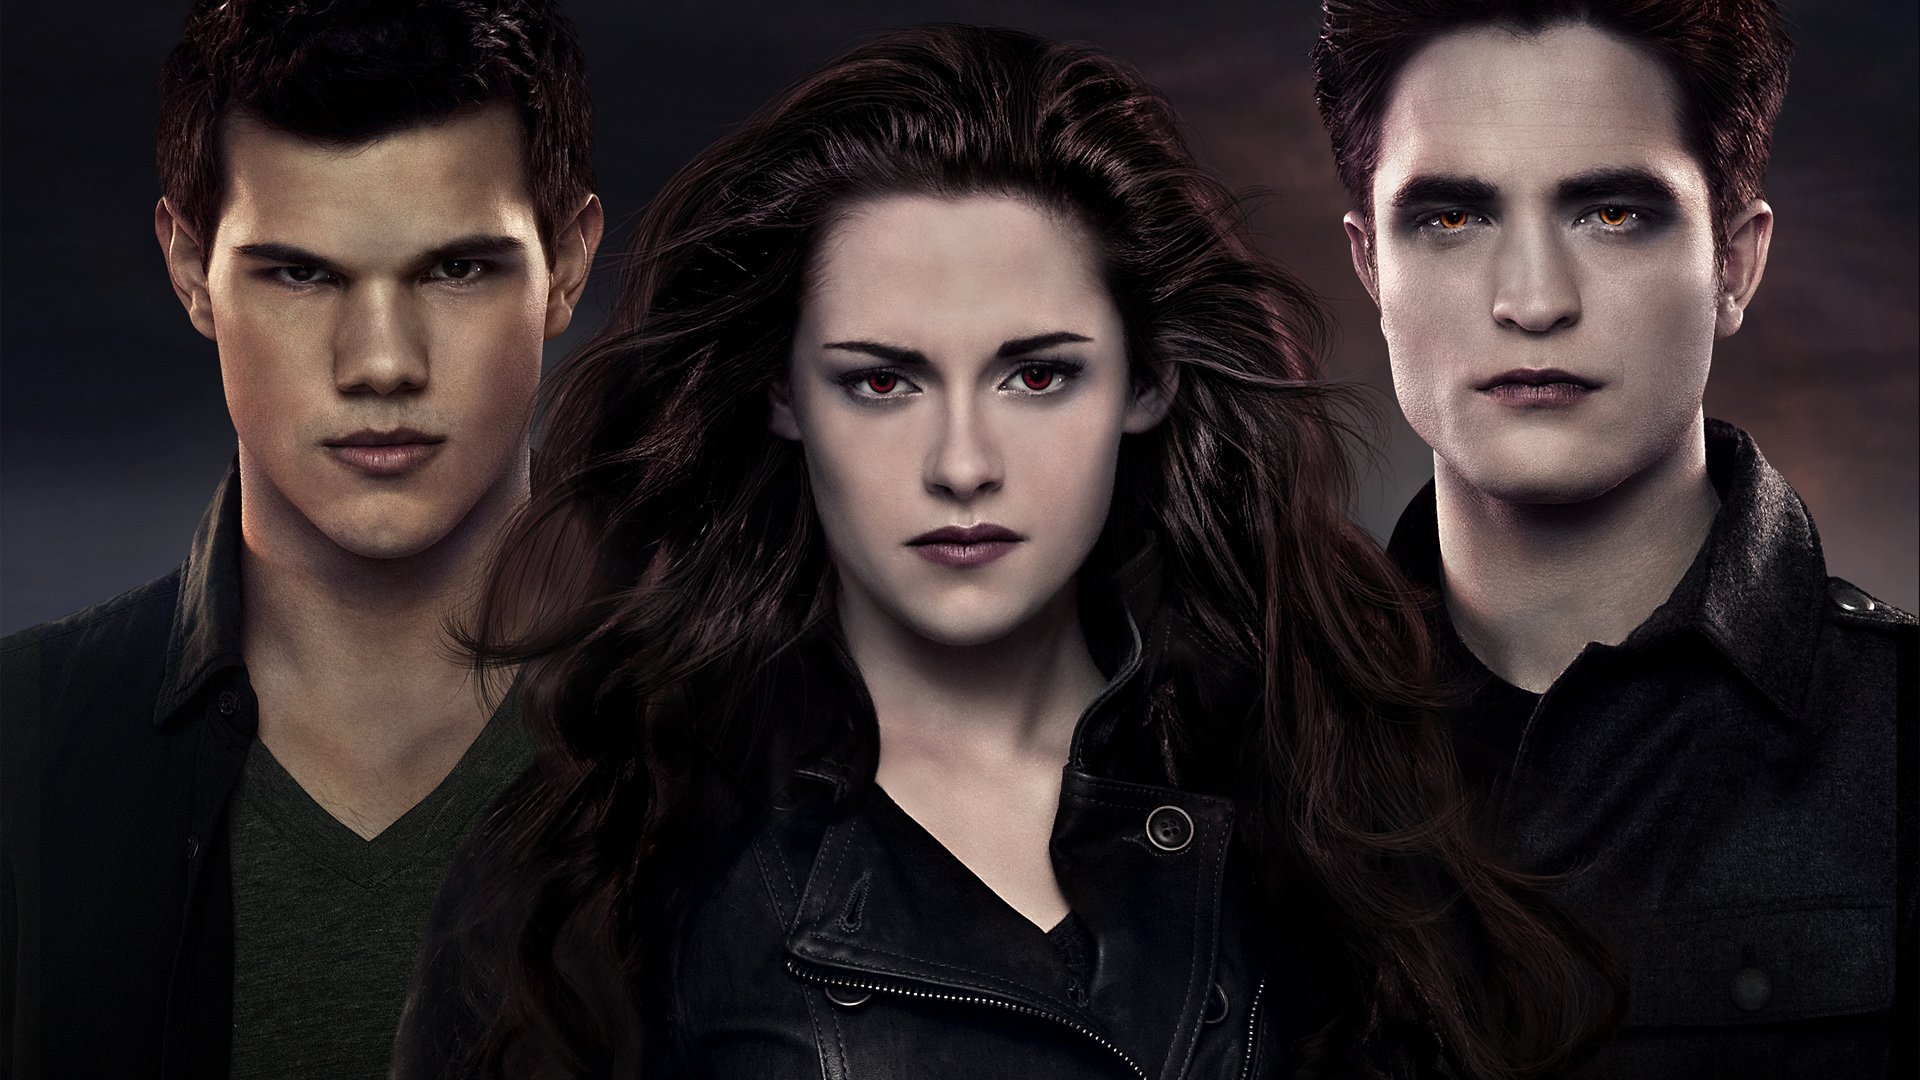 Movie - The Twilight Saga: Breaking Dawn - Part 2  Kristen Stewart Bella Swan Robert Pattinson Edward Cullen Taylor Lautner Jacob Black Wallpaper